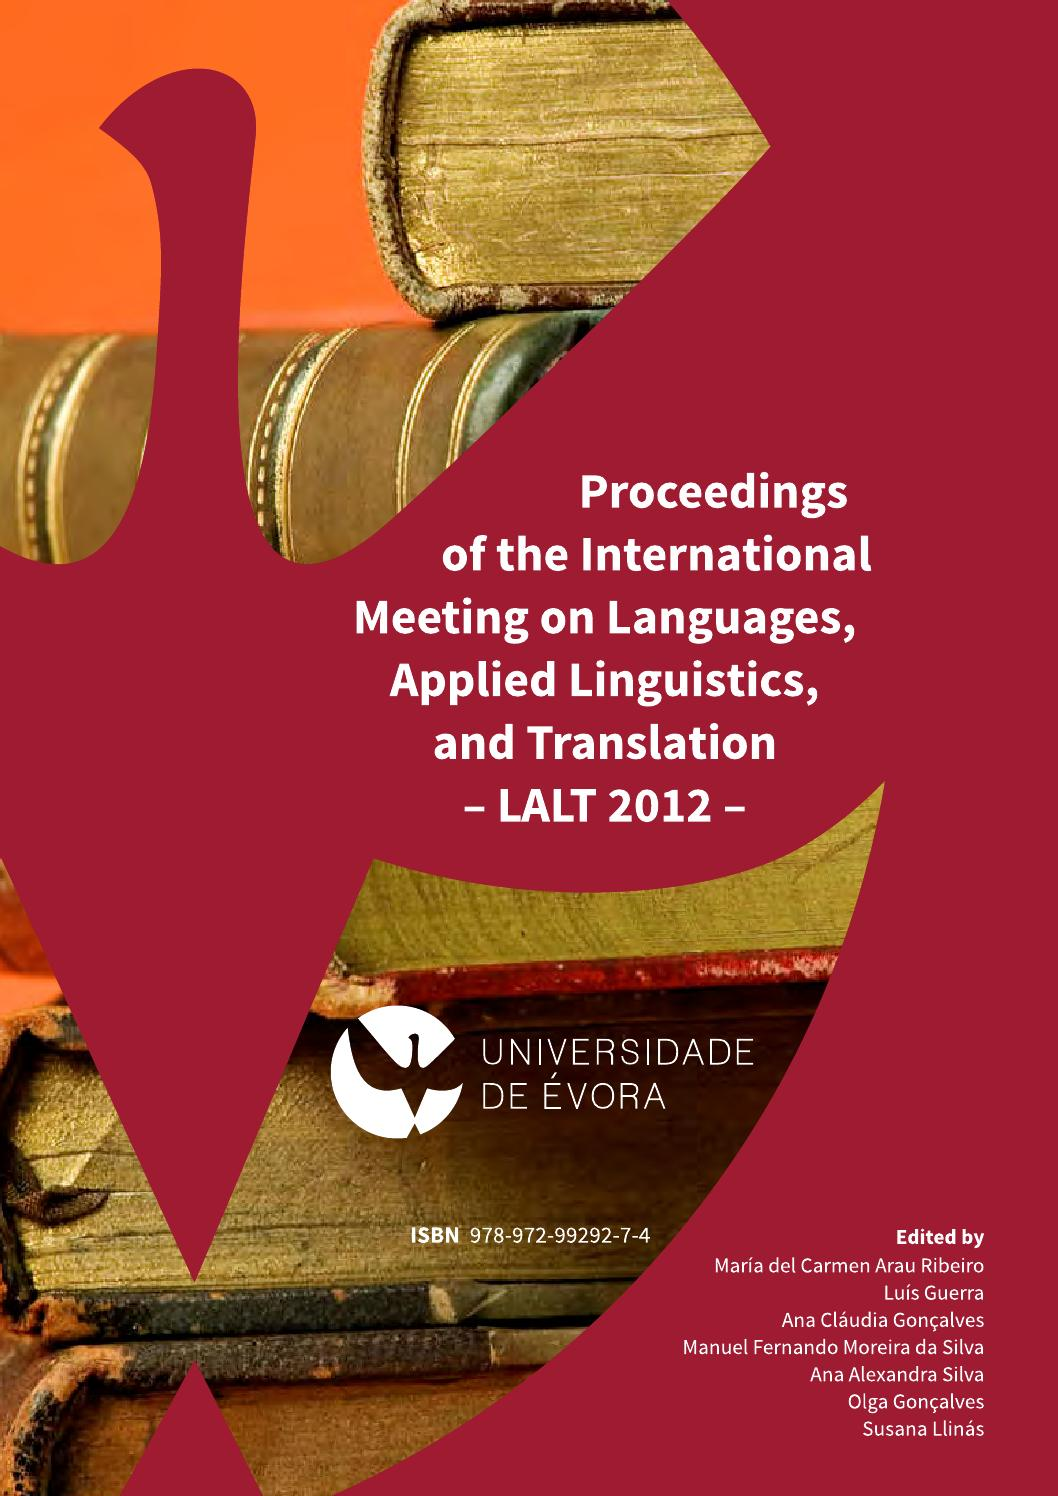 Fui A La Cocina Translation Lalt2012 Proceedings Of The International Meeting On Languages